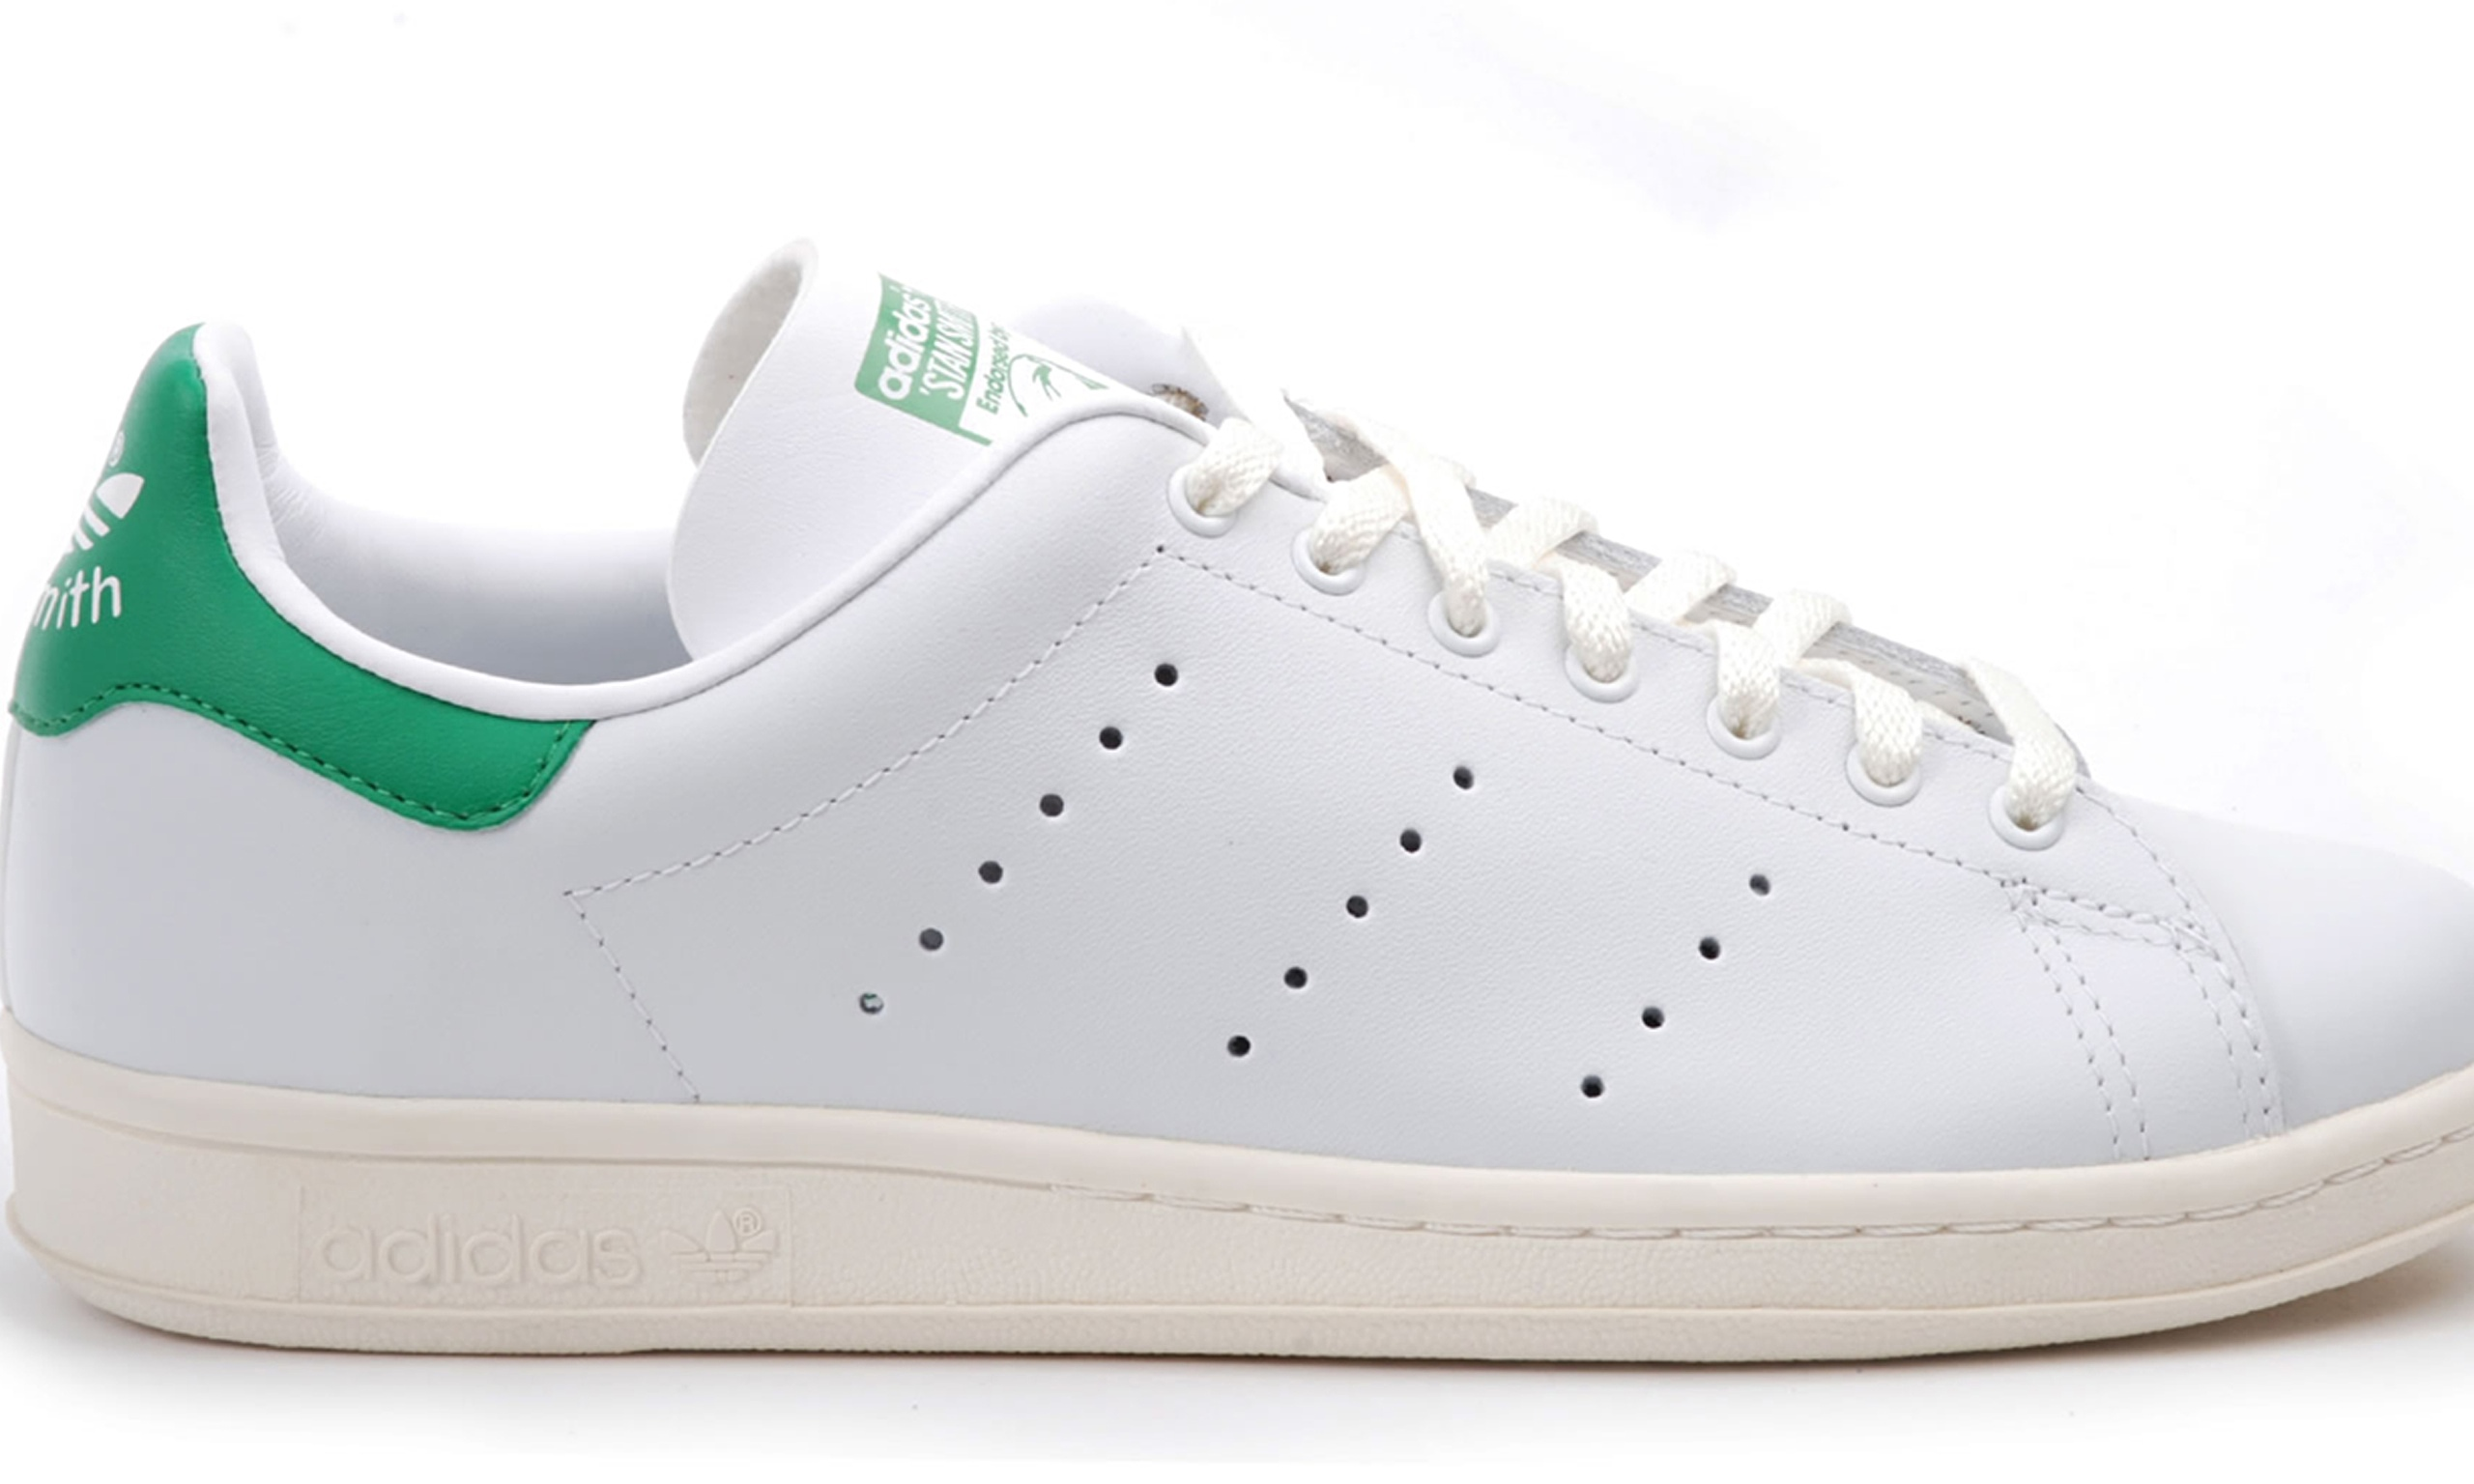 stan smith the tennis player returns to promote stan smith the shoe fashion the guardian. Black Bedroom Furniture Sets. Home Design Ideas